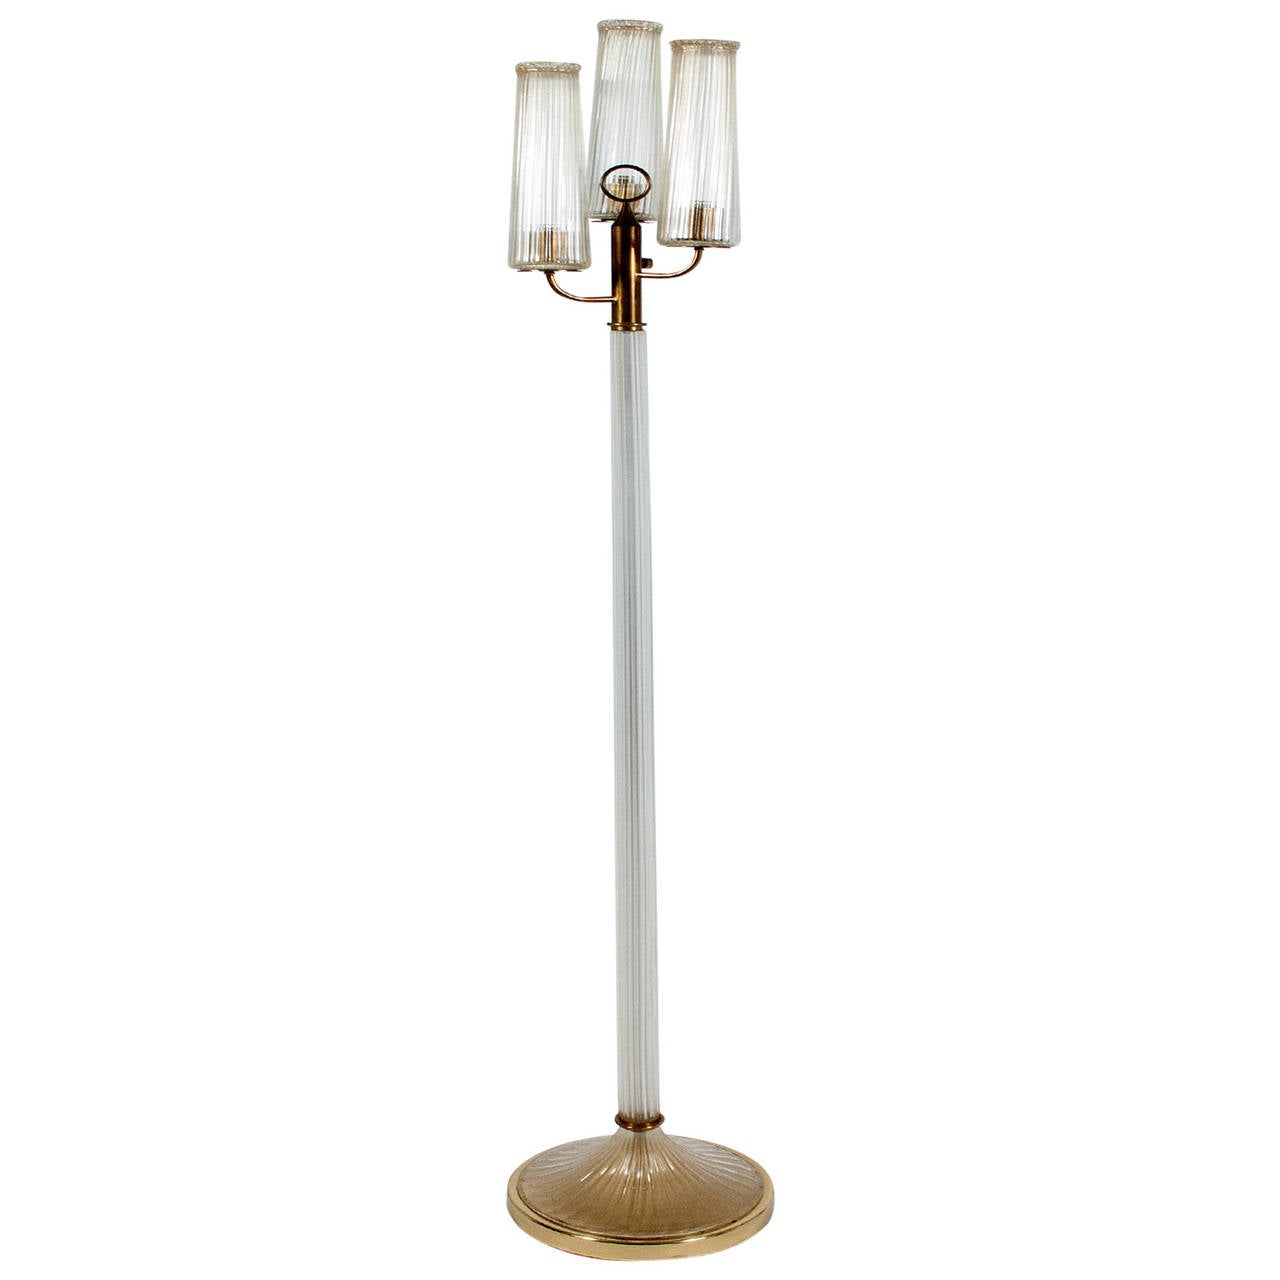 Barovier e toso glass floor lamp for sale at 1stdibs for Barovier e toso